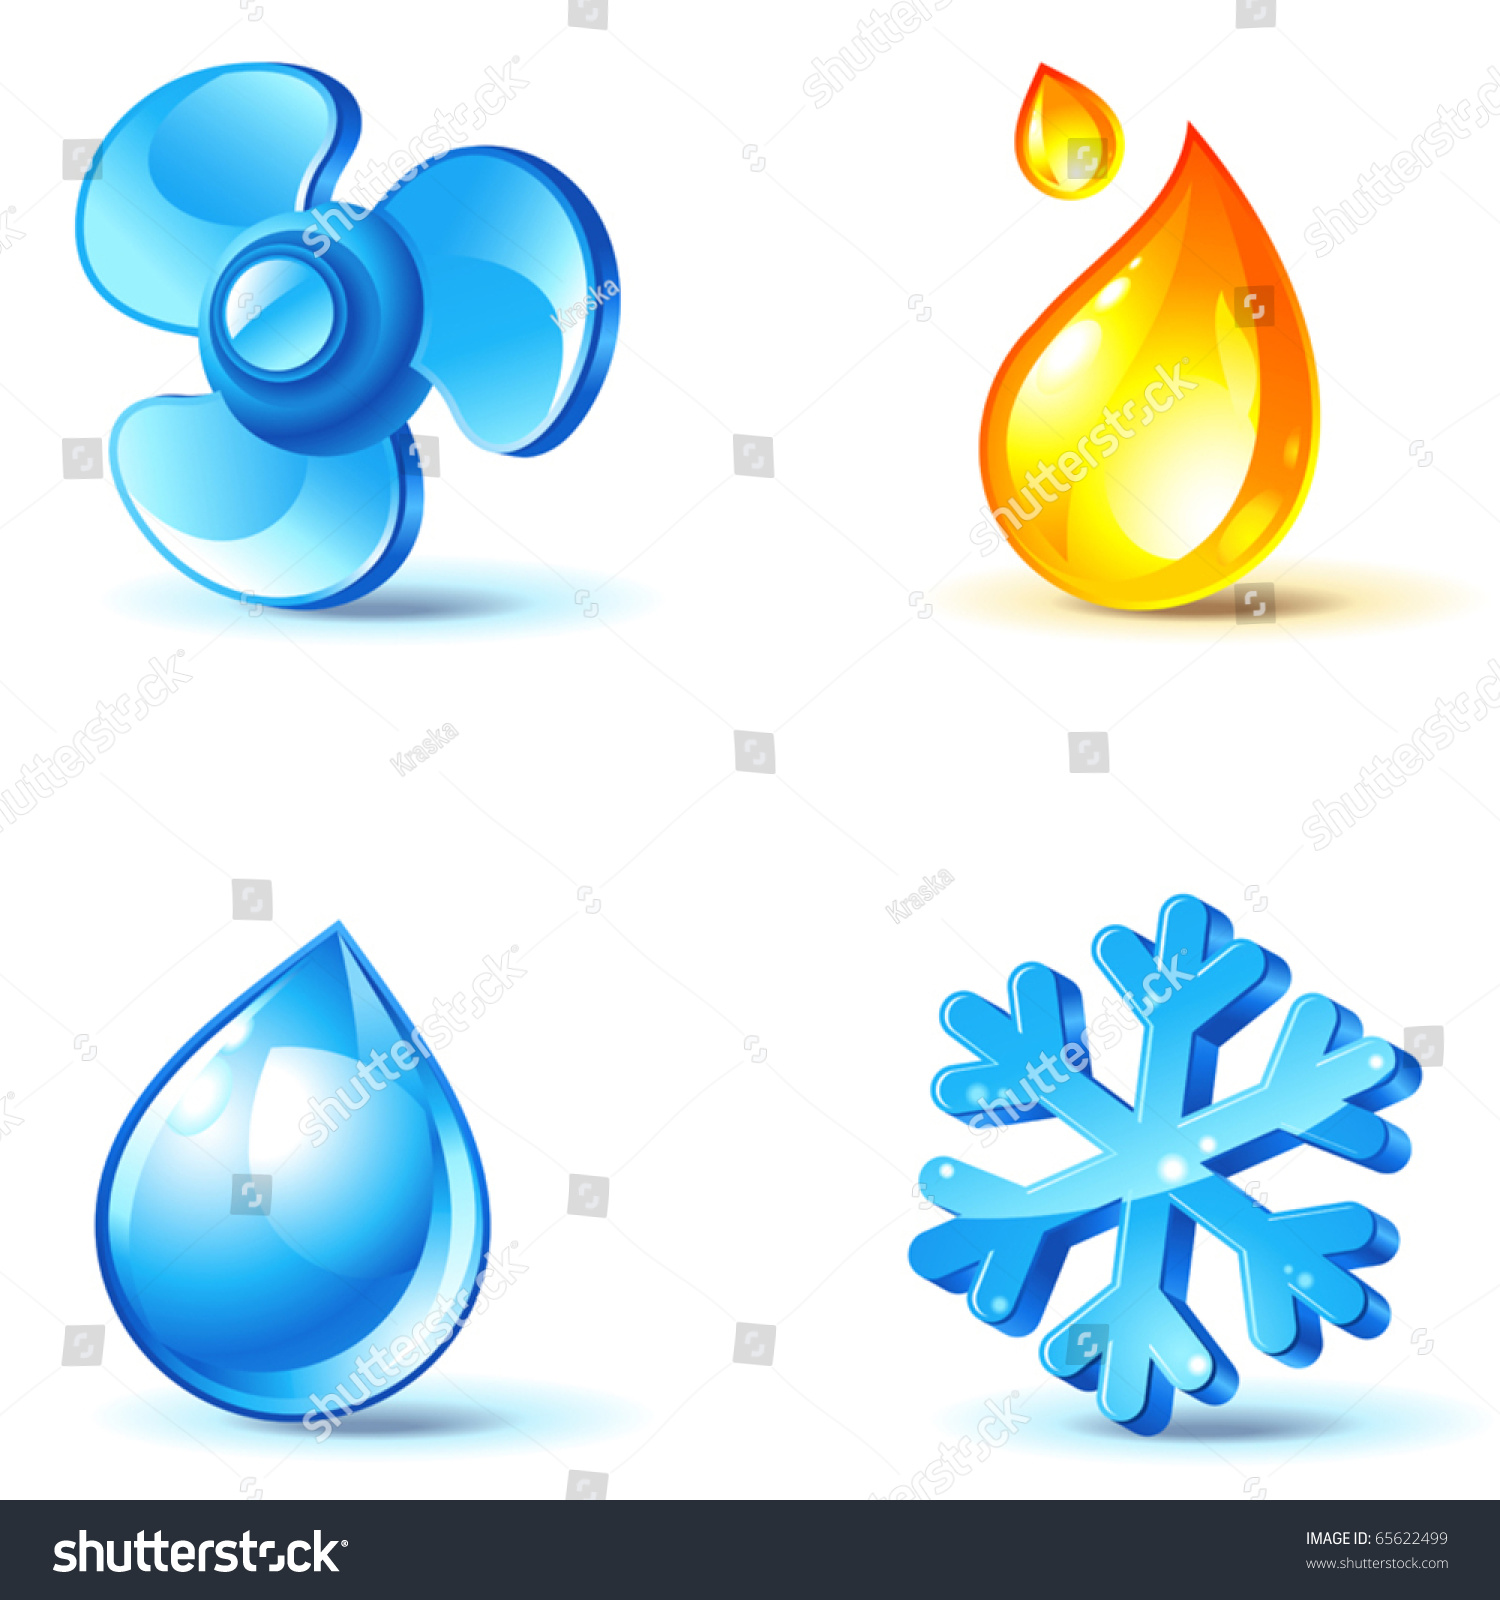 cold air conditioner clipart. air-conditioner icons - blow, cold, heat, moisture cold air conditioner clipart c